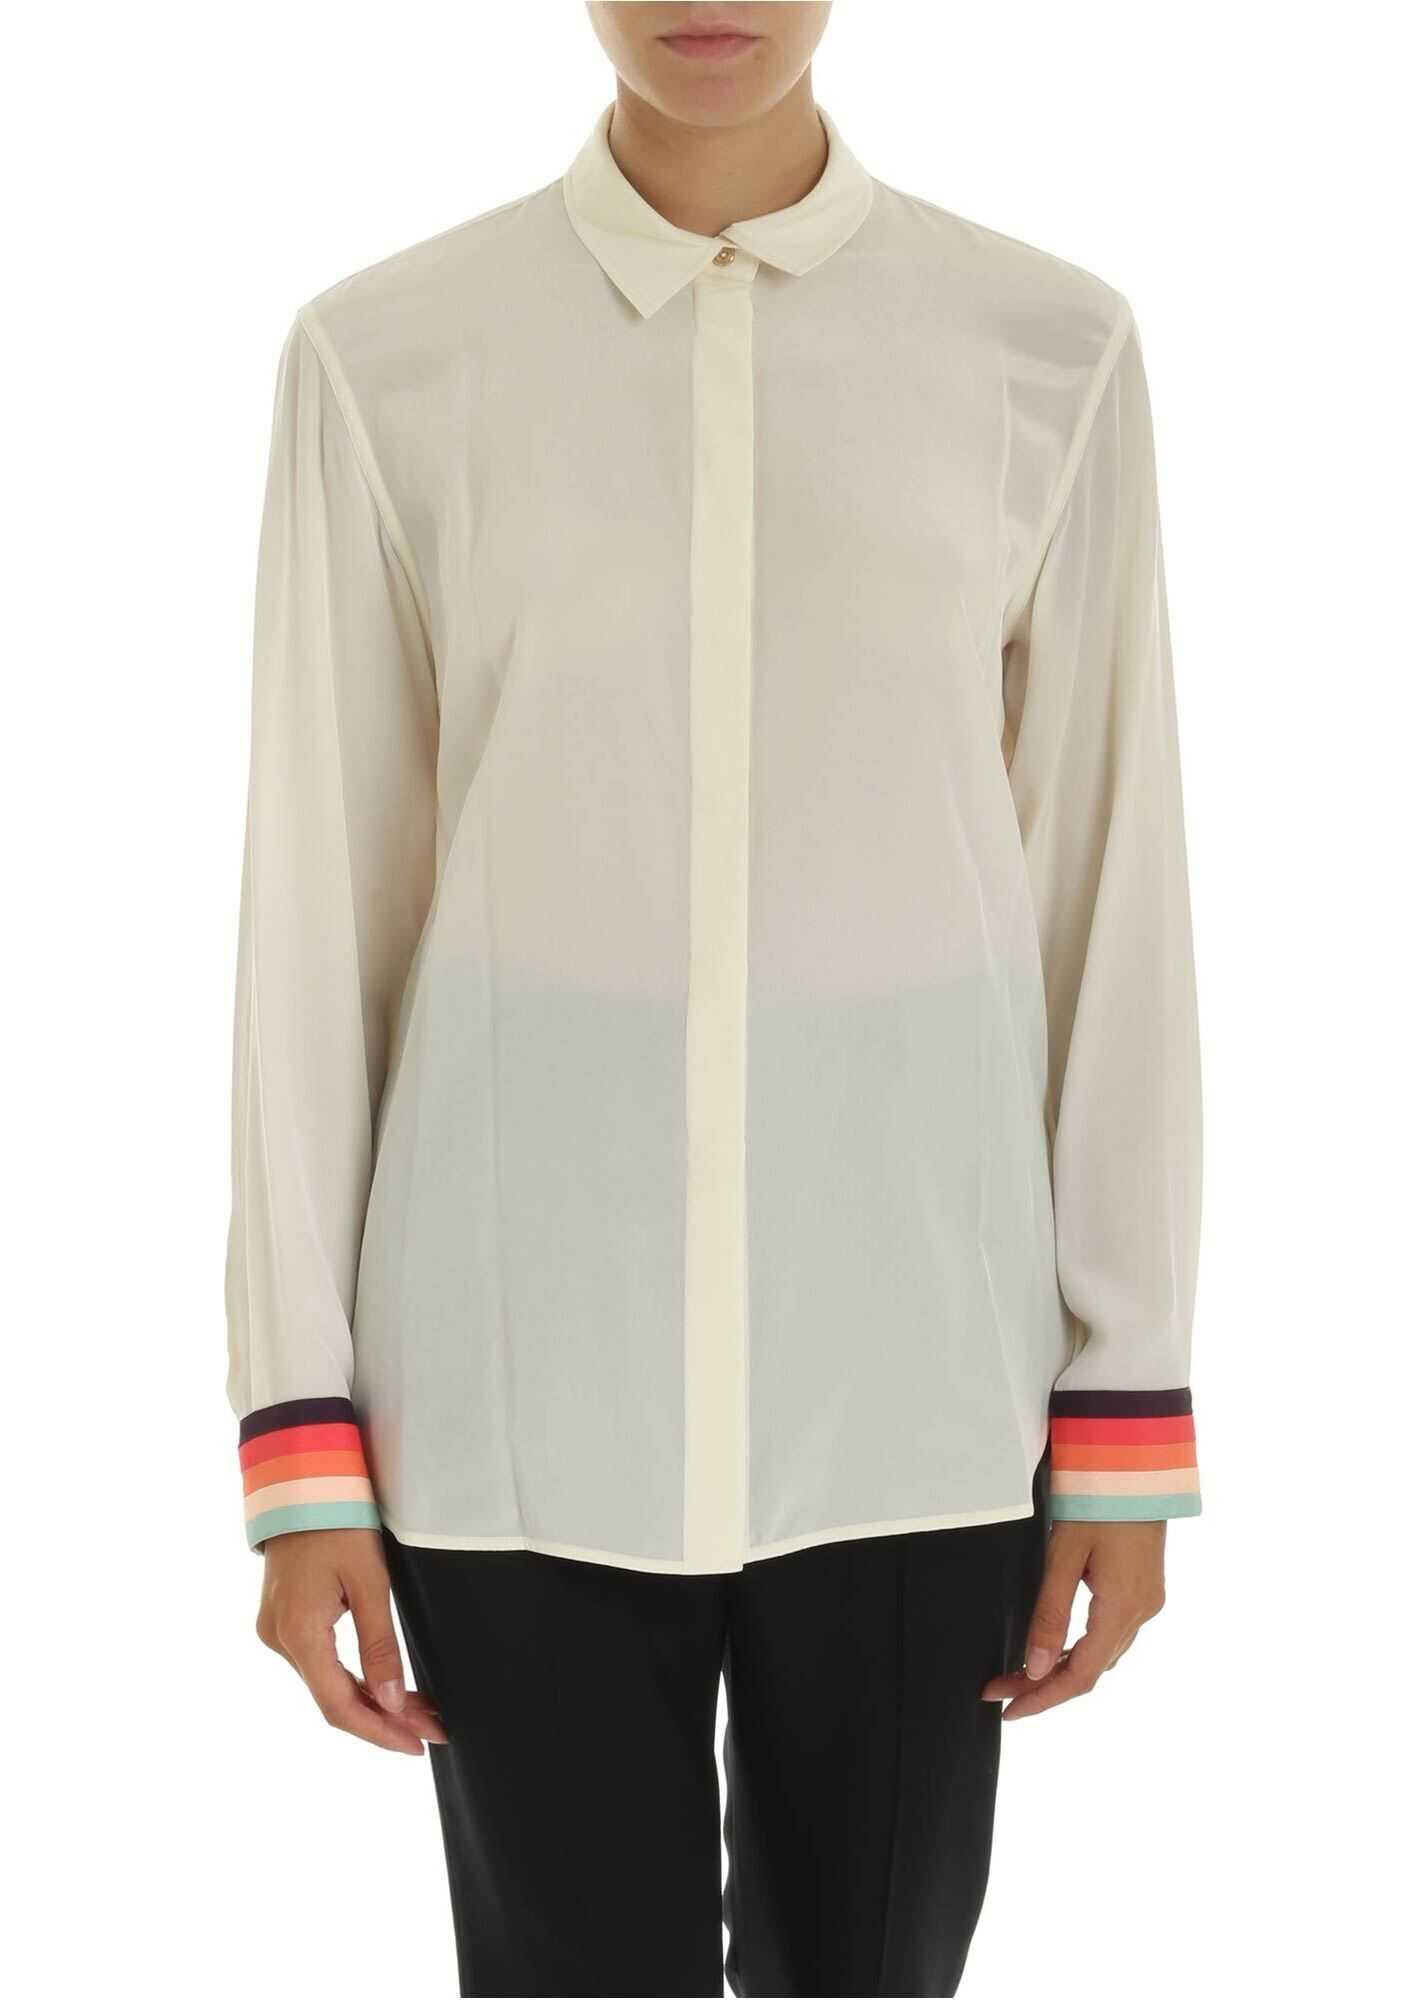 Silk Shirt In Ivory Color With Multicolor Details thumbnail